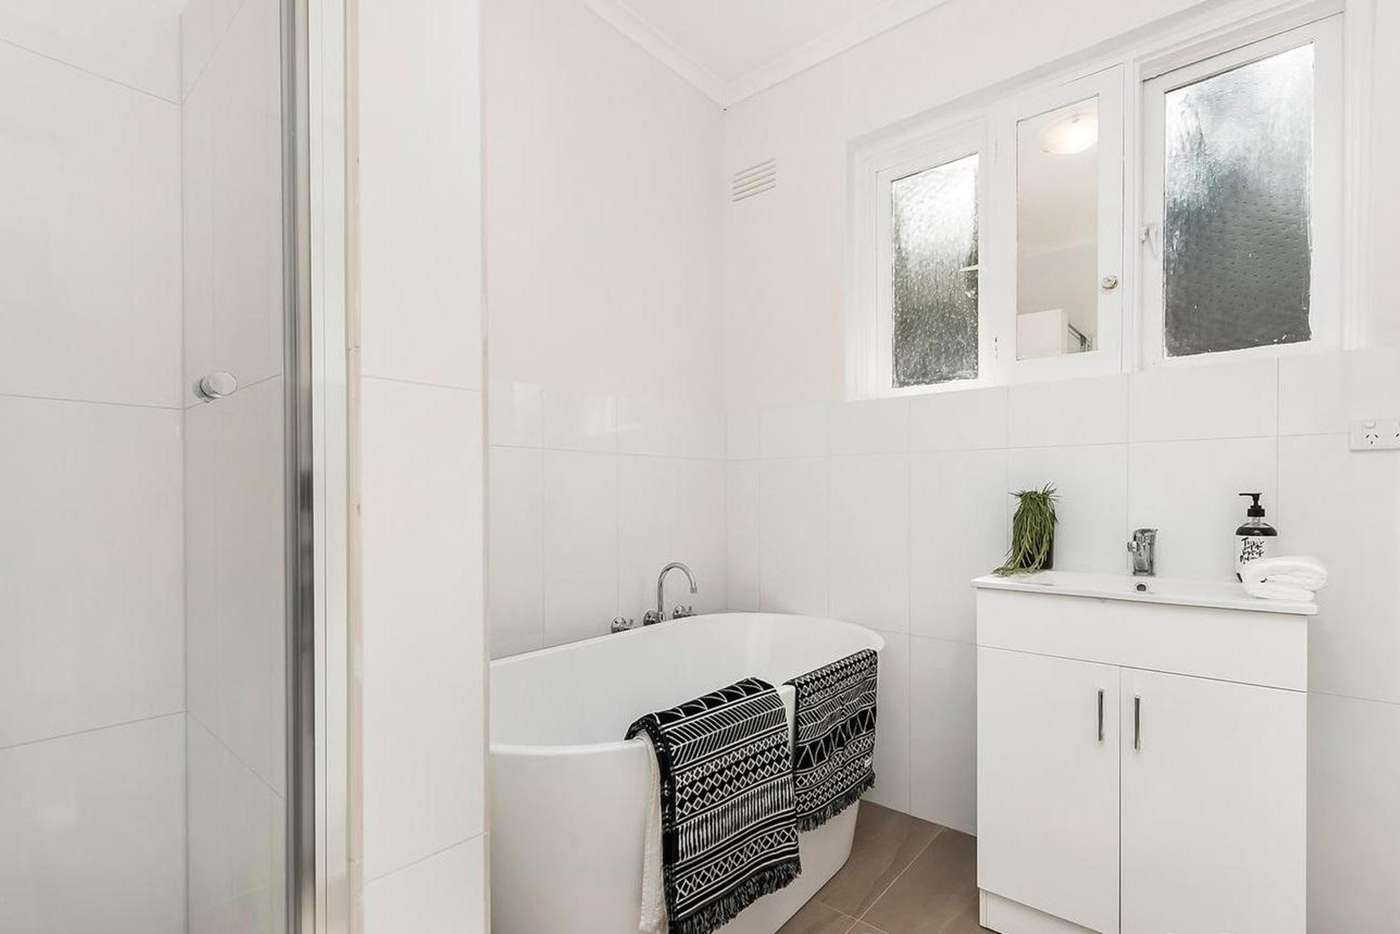 Sixth view of Homely apartment listing, 2/1 Garden Street, Elsternwick VIC 3185